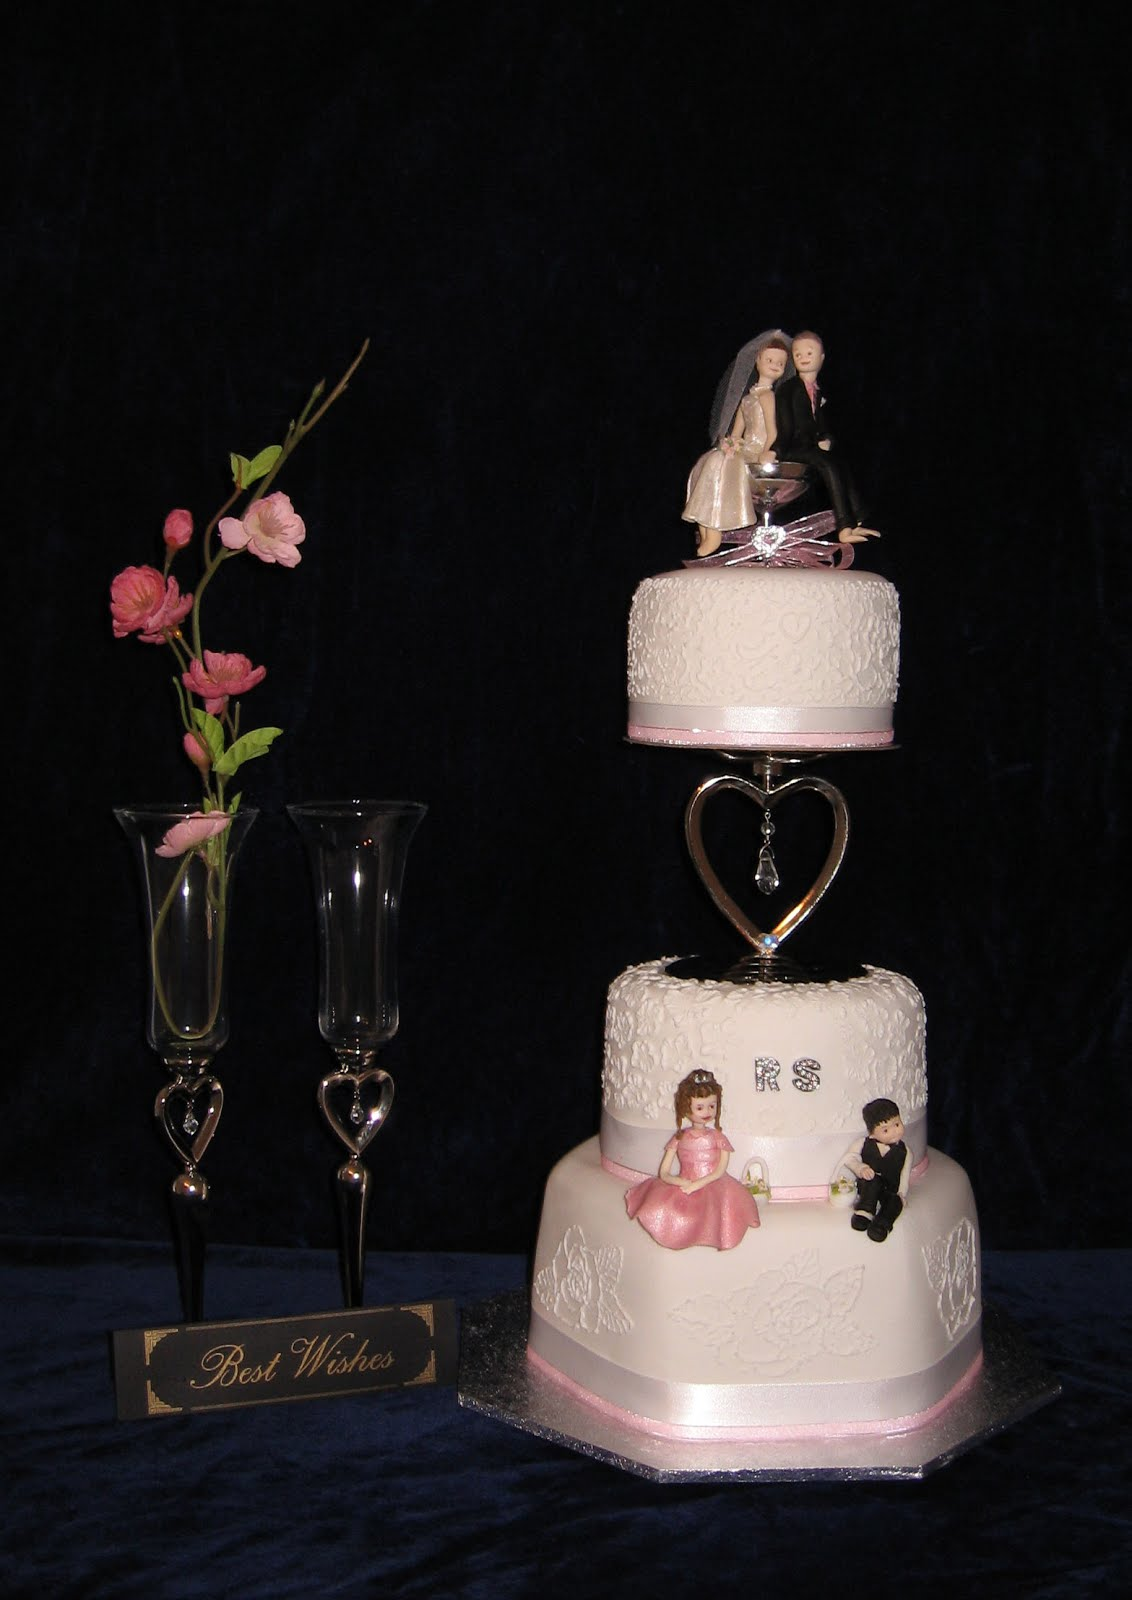 PLANNING YOUR WEDDING CAKE